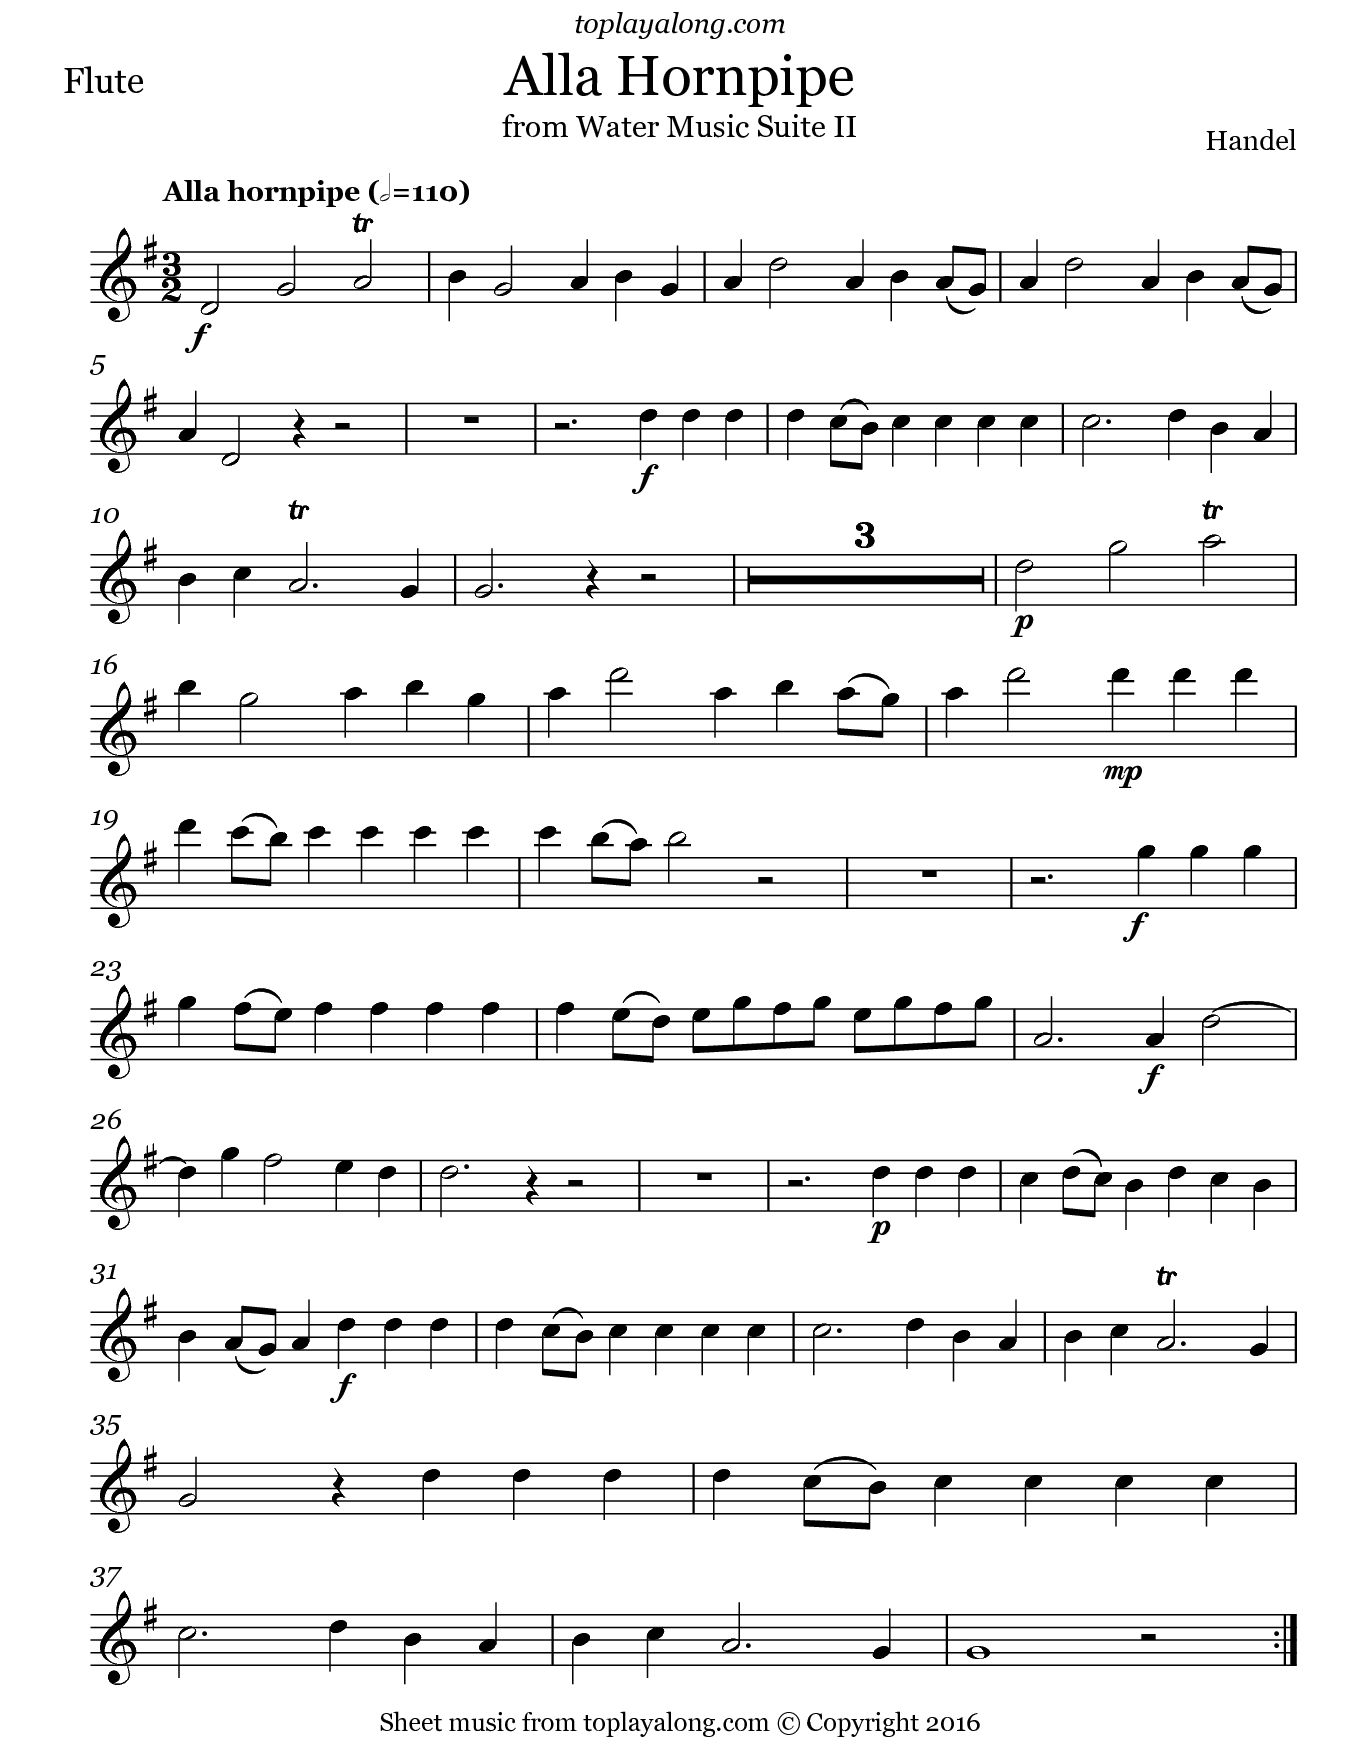 Alla Hornpipe from Water Music Suite II by Handel. Sheet music for Flute, page 1.